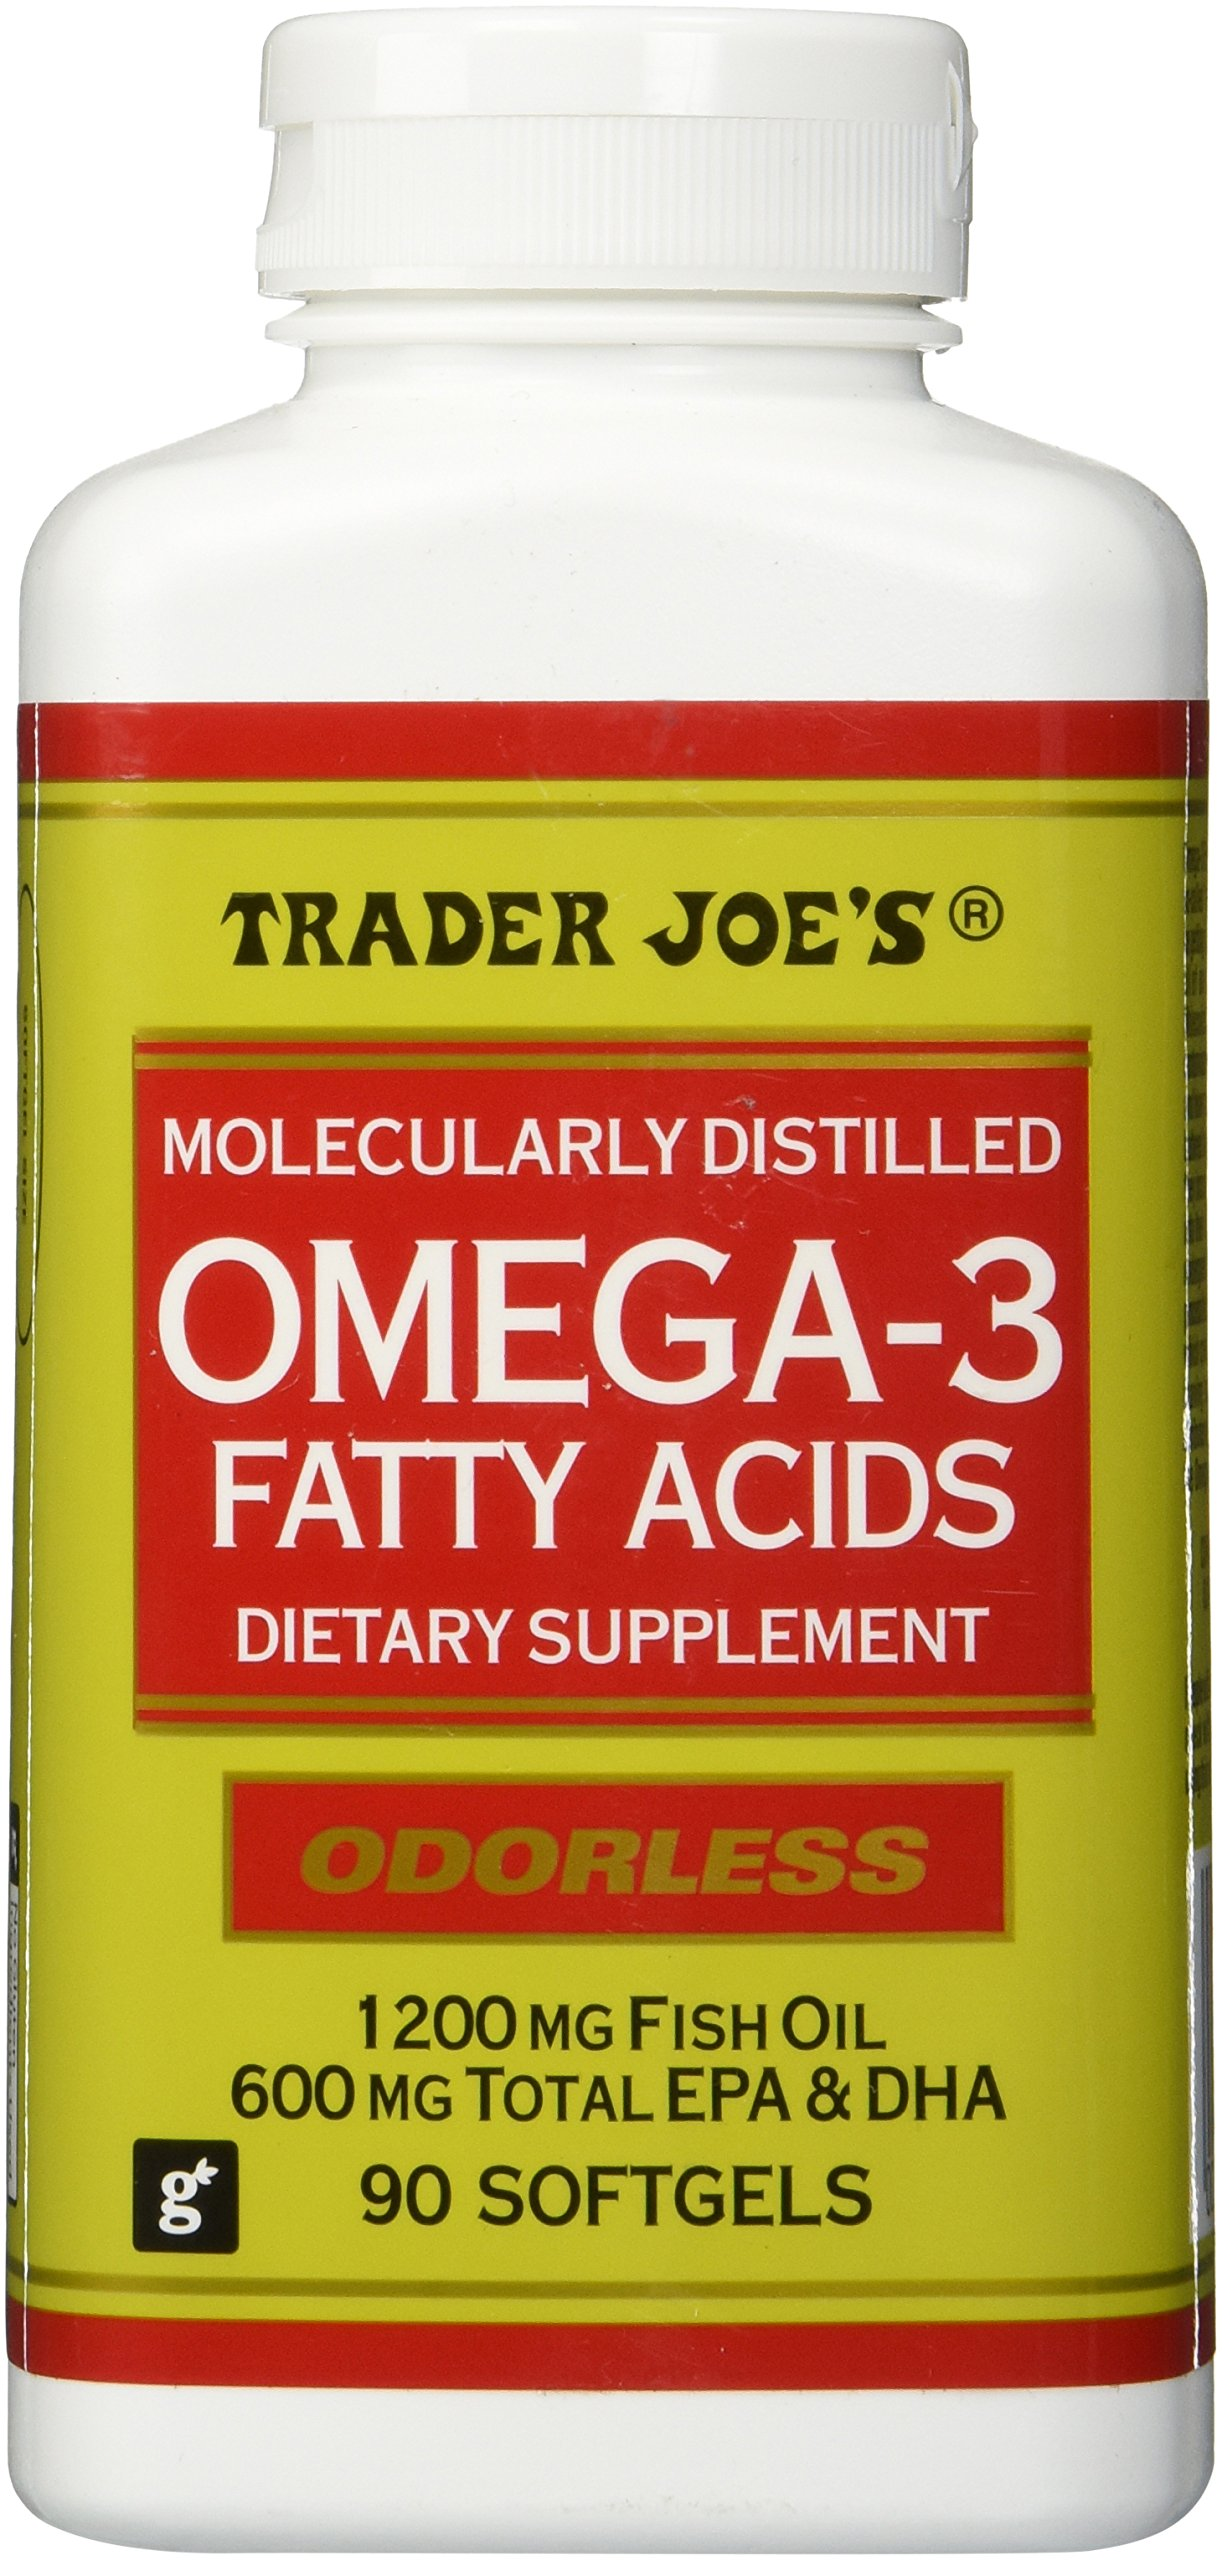 Trader Joes Omega-3 Fatty Acids 1200mg Fish Oil, 90softgels, Odorless